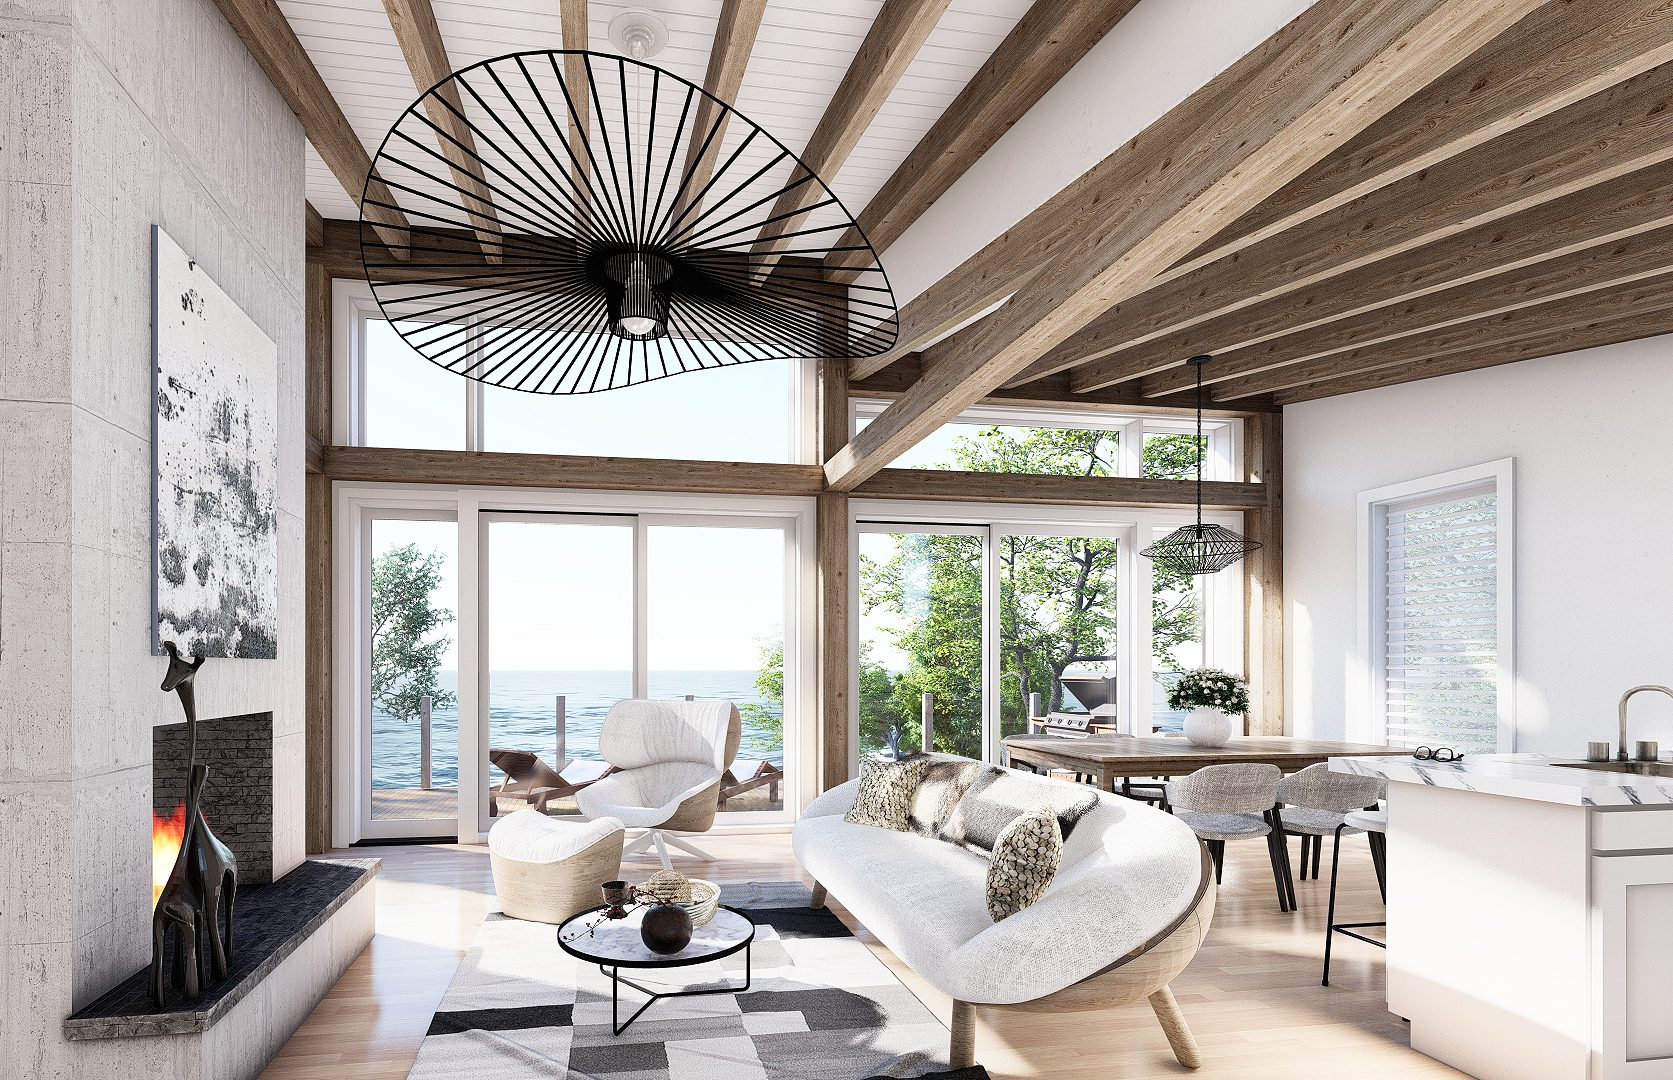 Normerica Timber Frames, House Plan, The Laurentian, Interior, Living Room, Open Concept